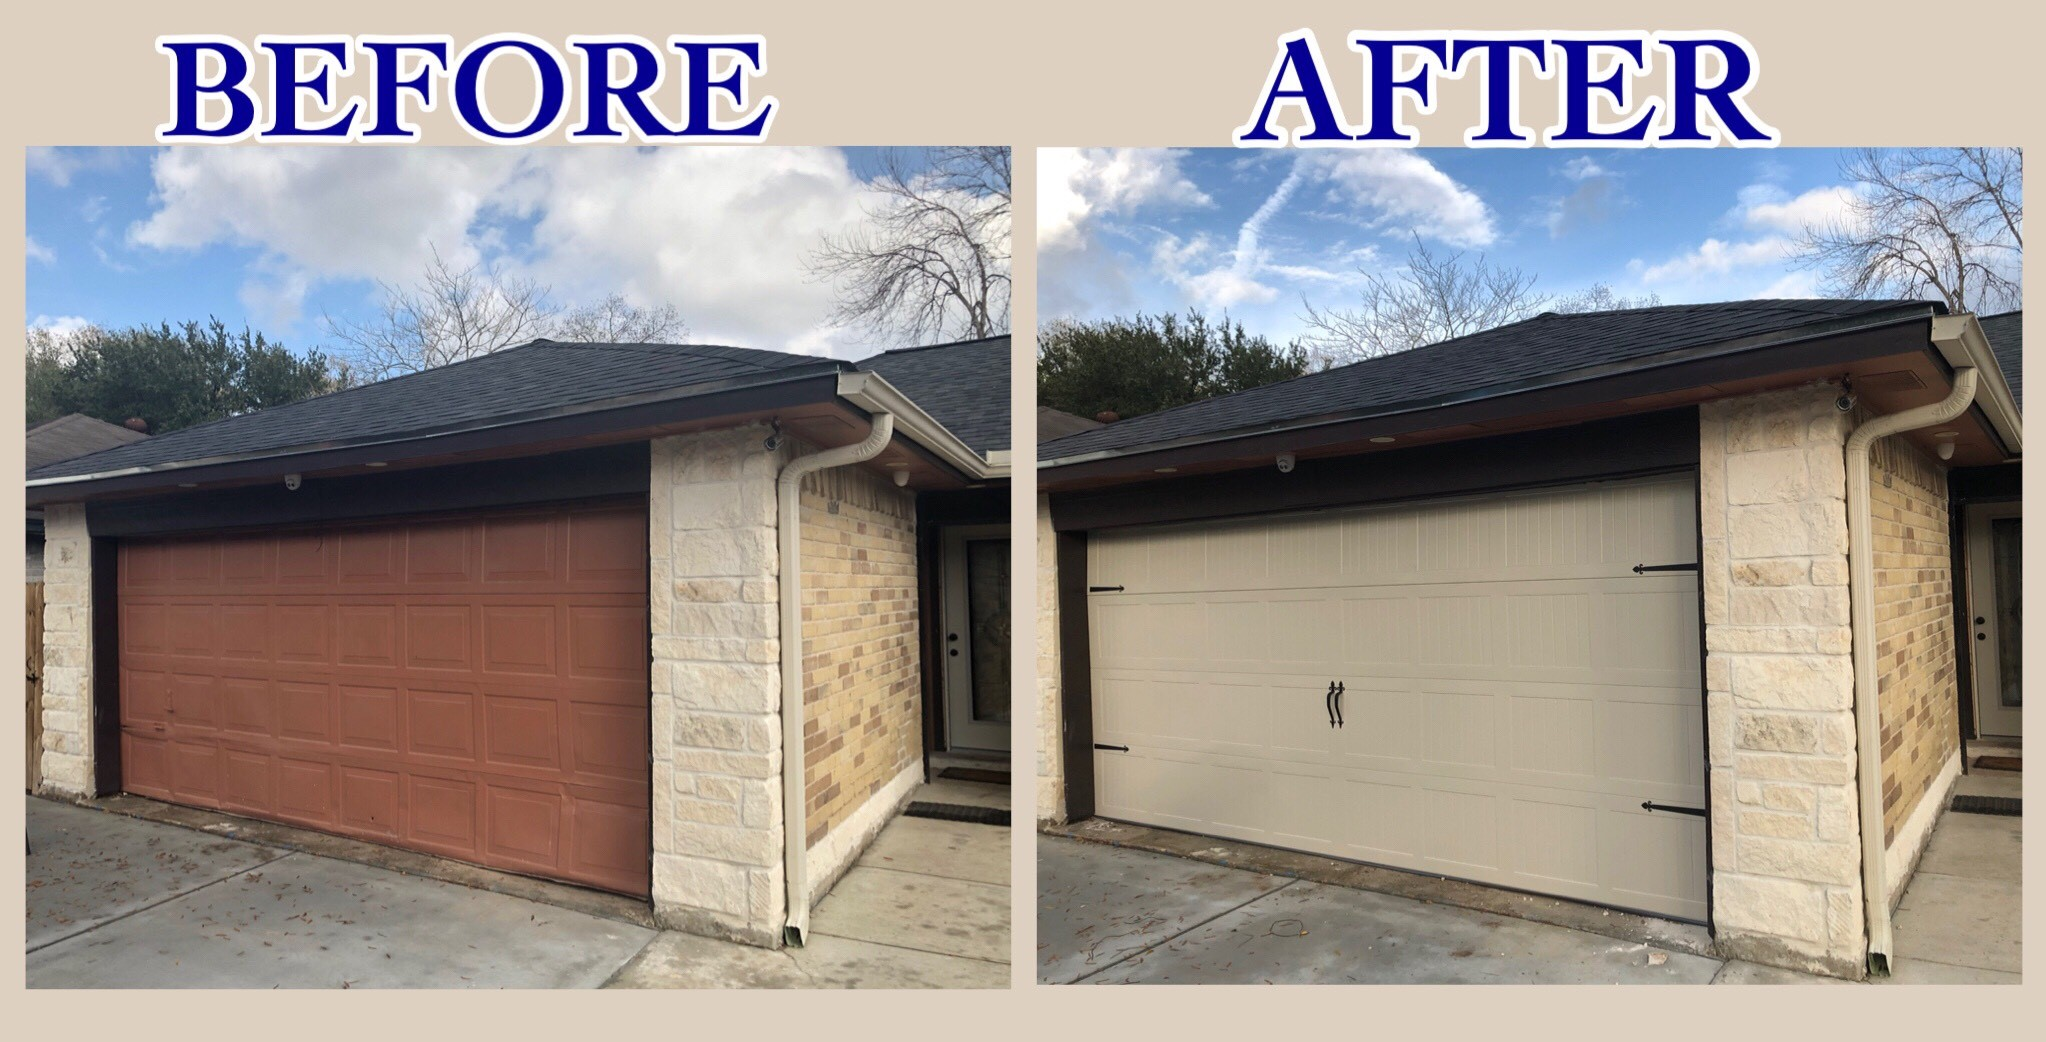 Texas Best Garage Door Co. image 2